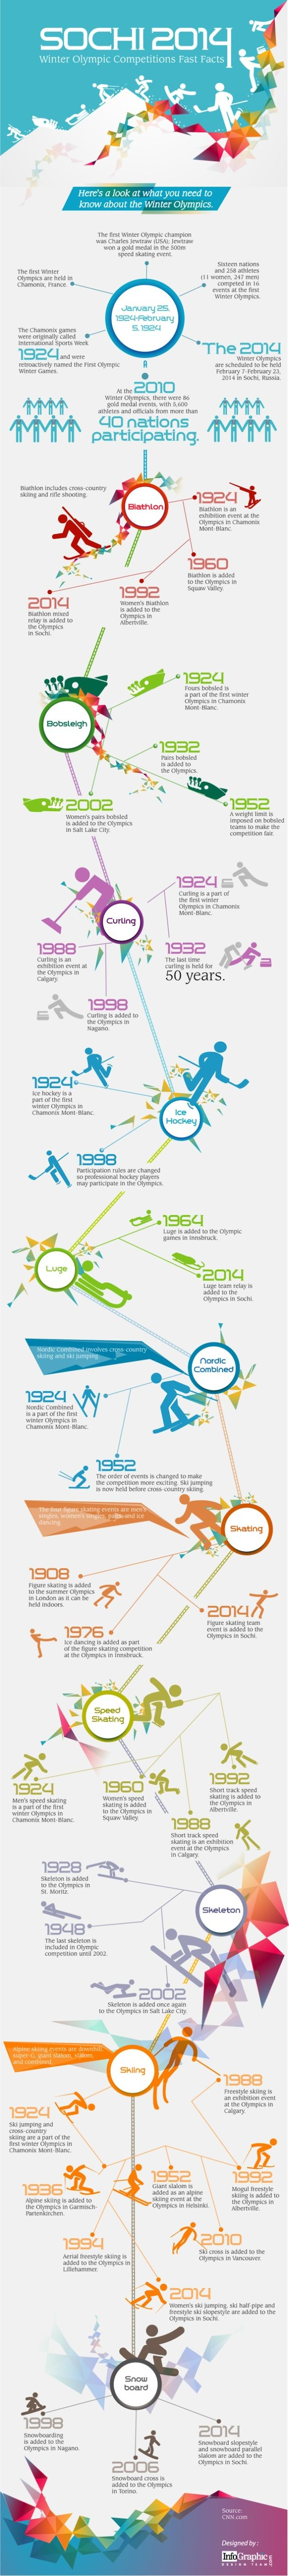 #Sochi2014   Winter #Olympic #Competitions Fast Facts